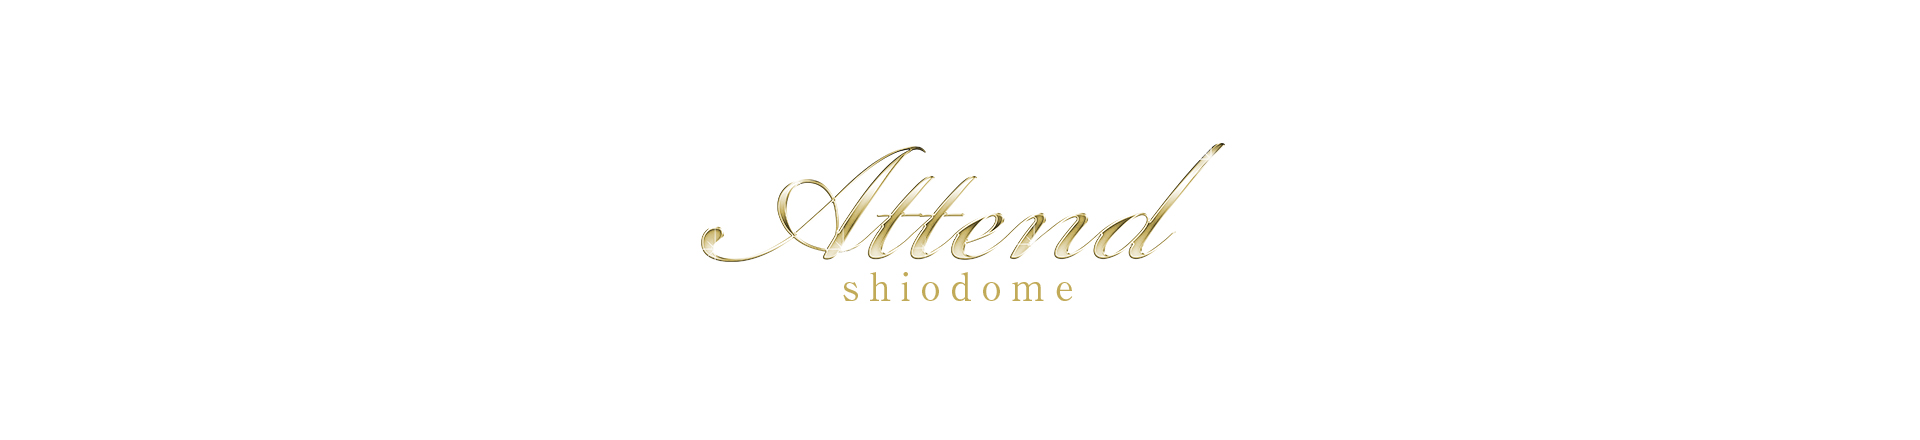 Attend shiodome白